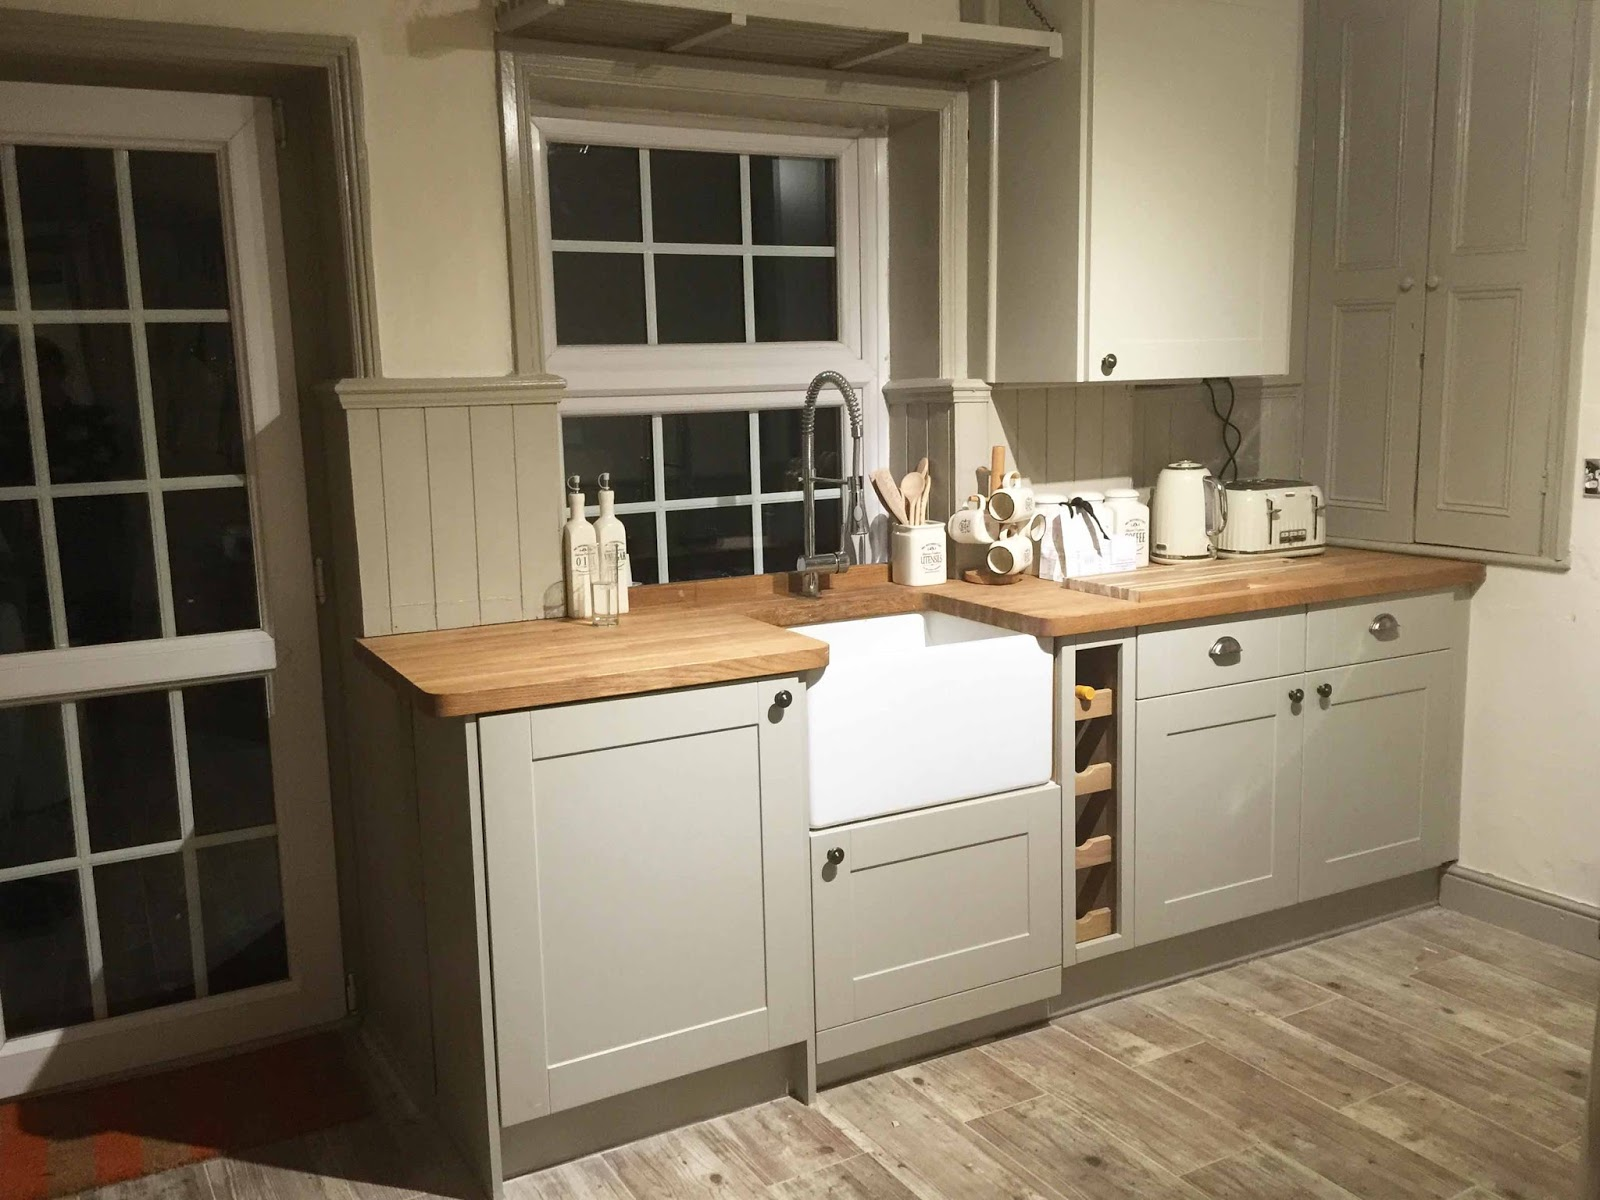 Homebase Cost Of Fitting Kitchens